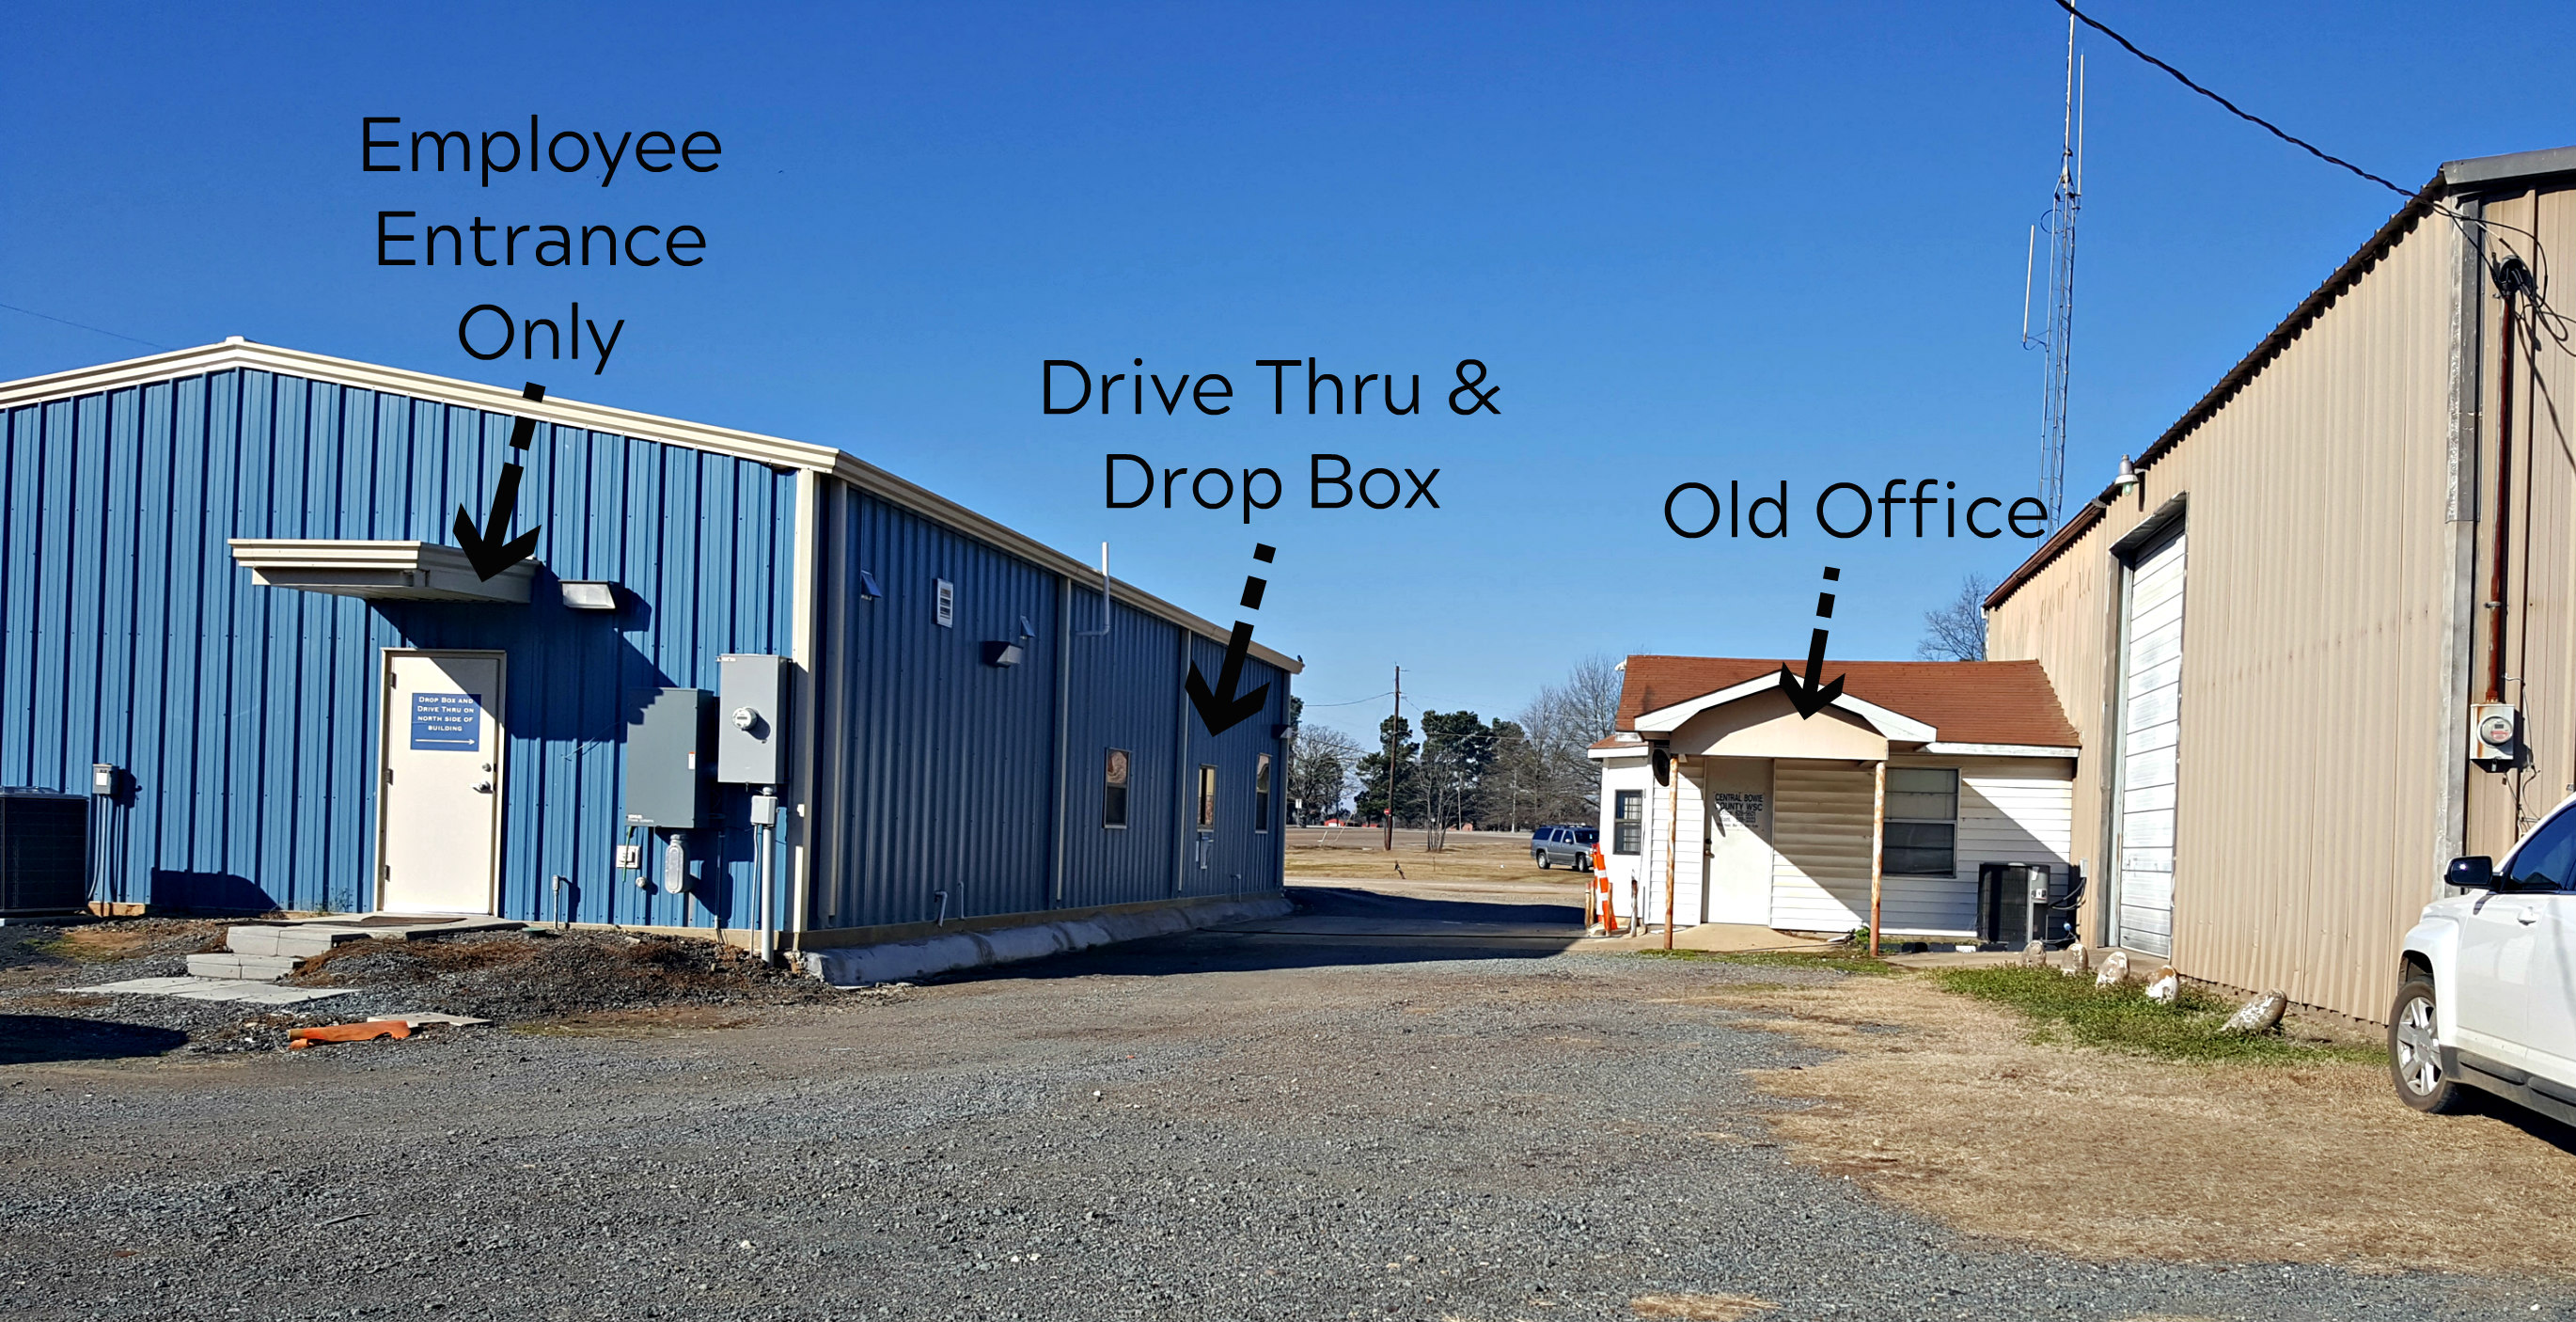 Drive Thru & Drop Box